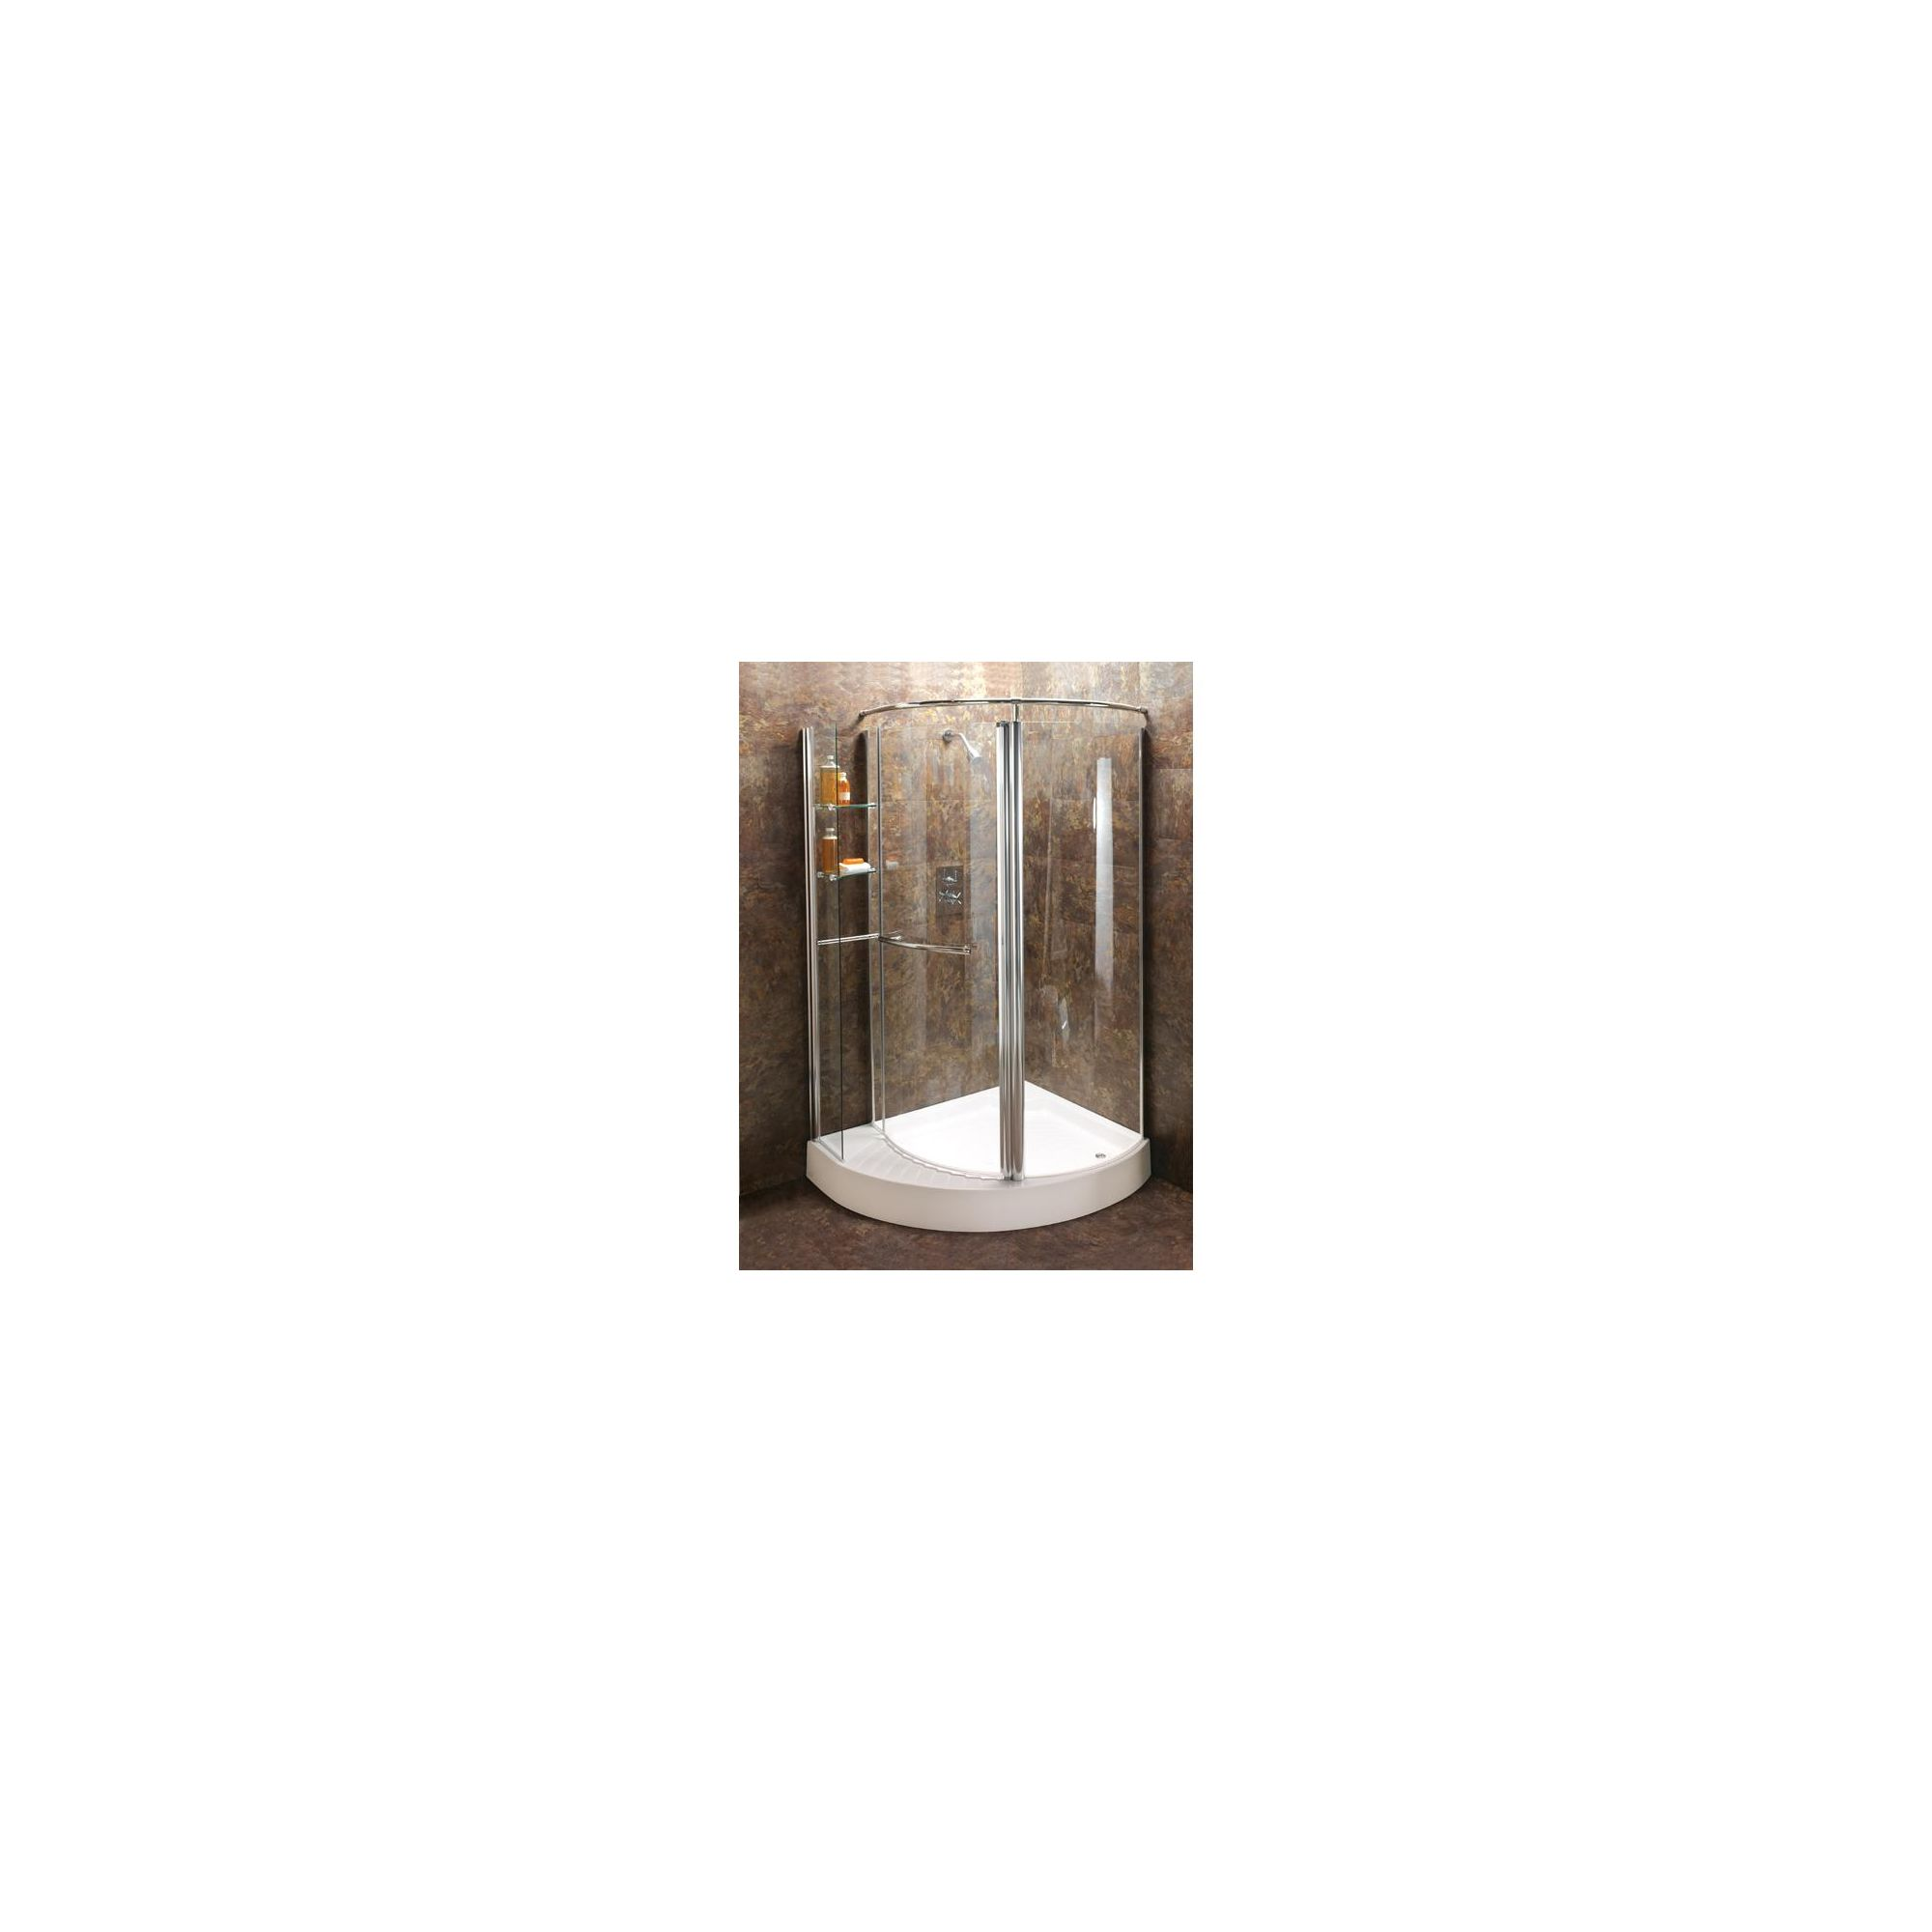 Balterley Offset Quadrant Shower Enclosure with Rotating Shelves, 1250mm x 1000mm, Standard Tray, Right Handed, 6mm Glass at Tesco Direct